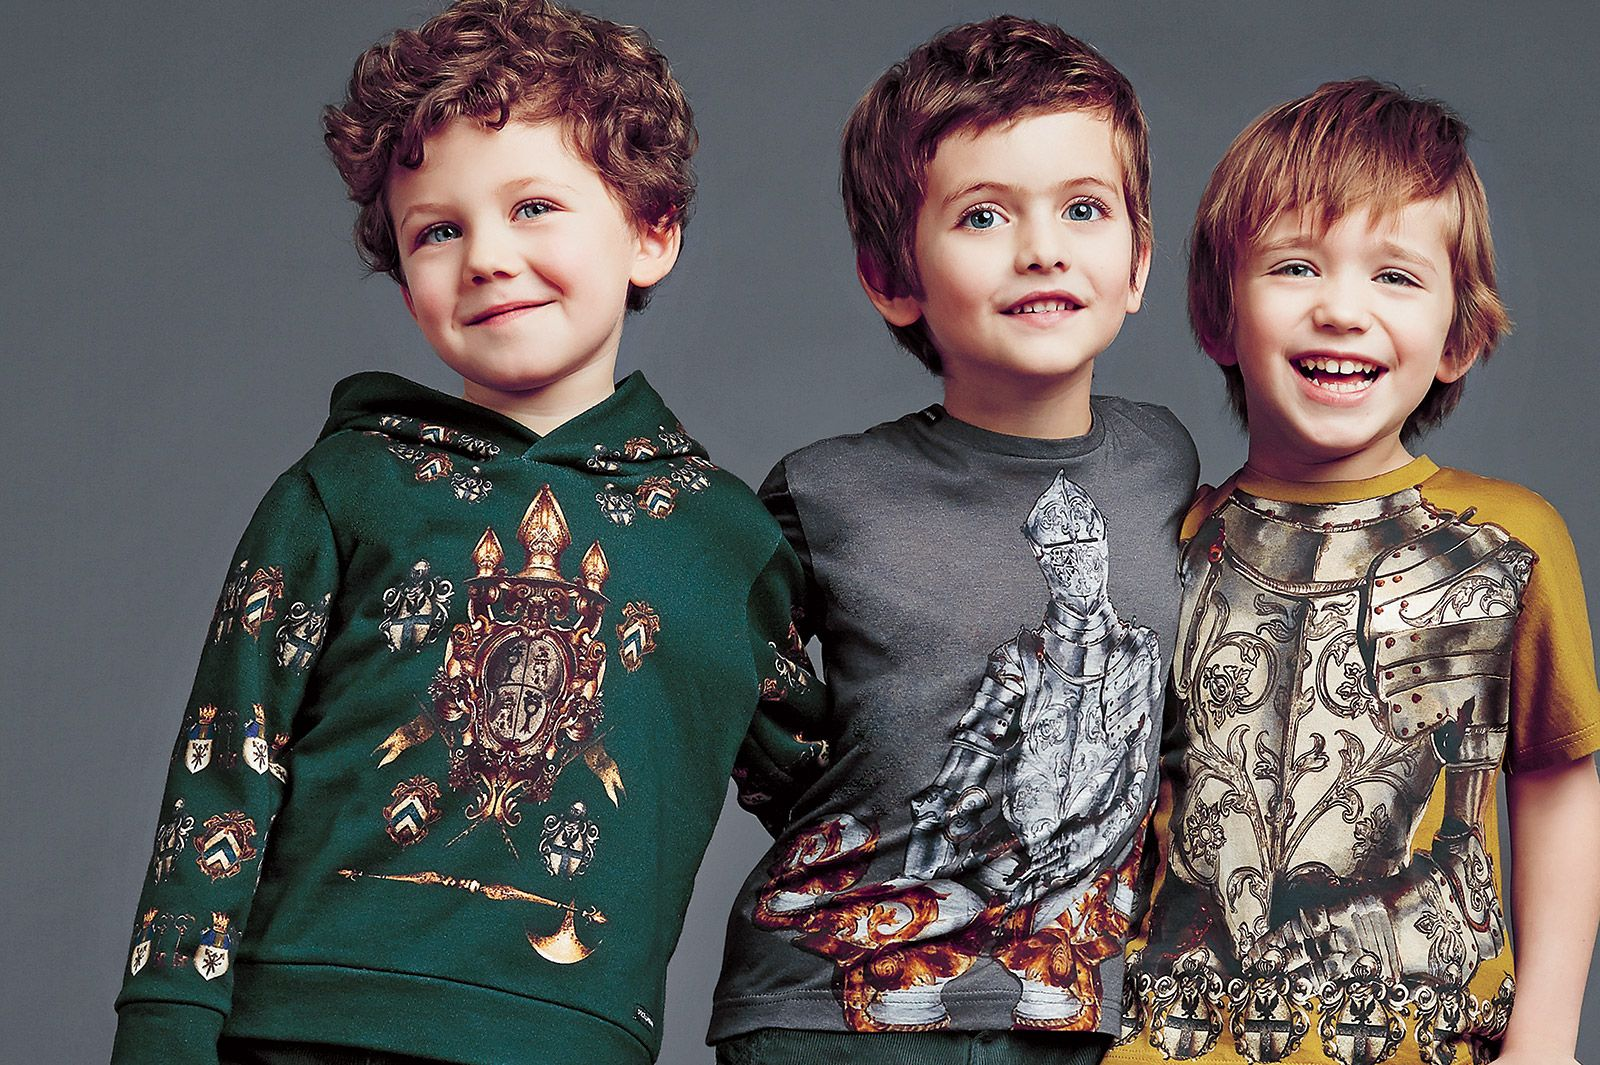 dolce-and-gabbana-winter-2015-child-collection-71.jpg (1600×1065)